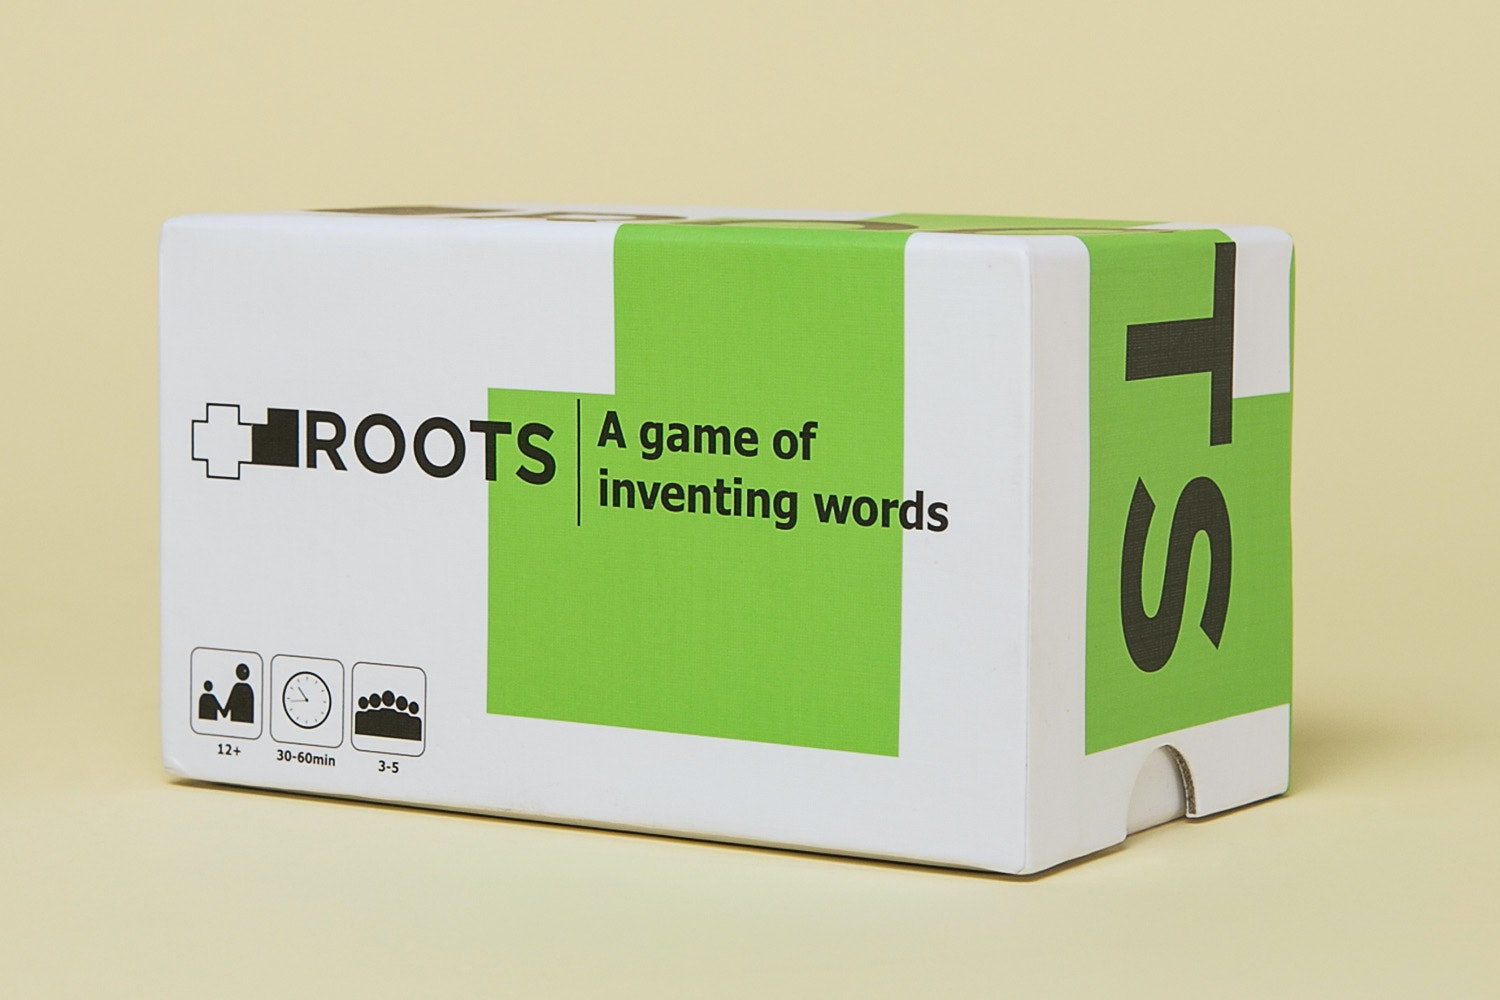 Roots: A Game of Inventing Words